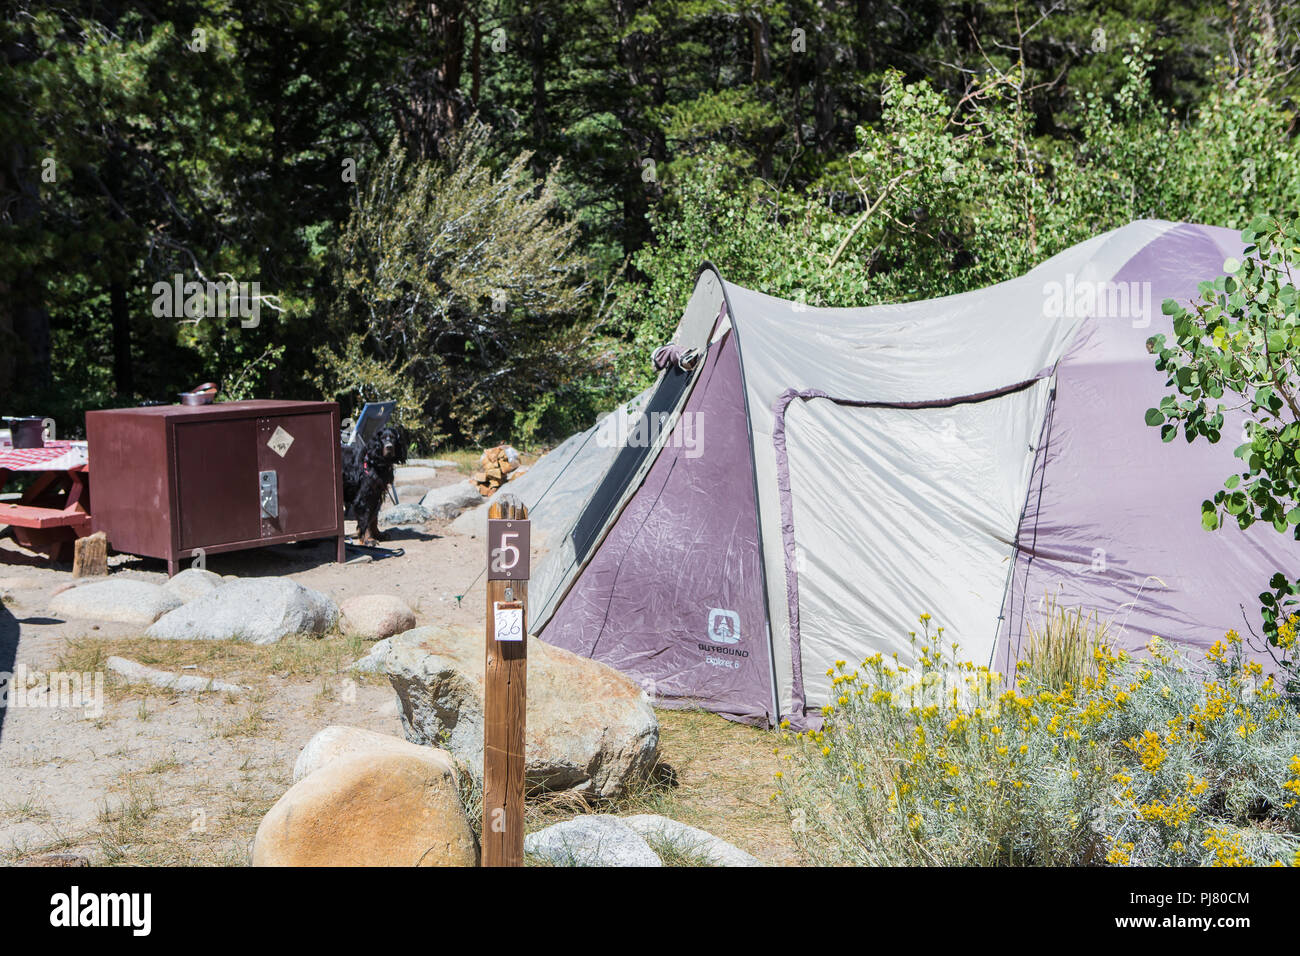 Tent campsite with family pet dog - Stock Image